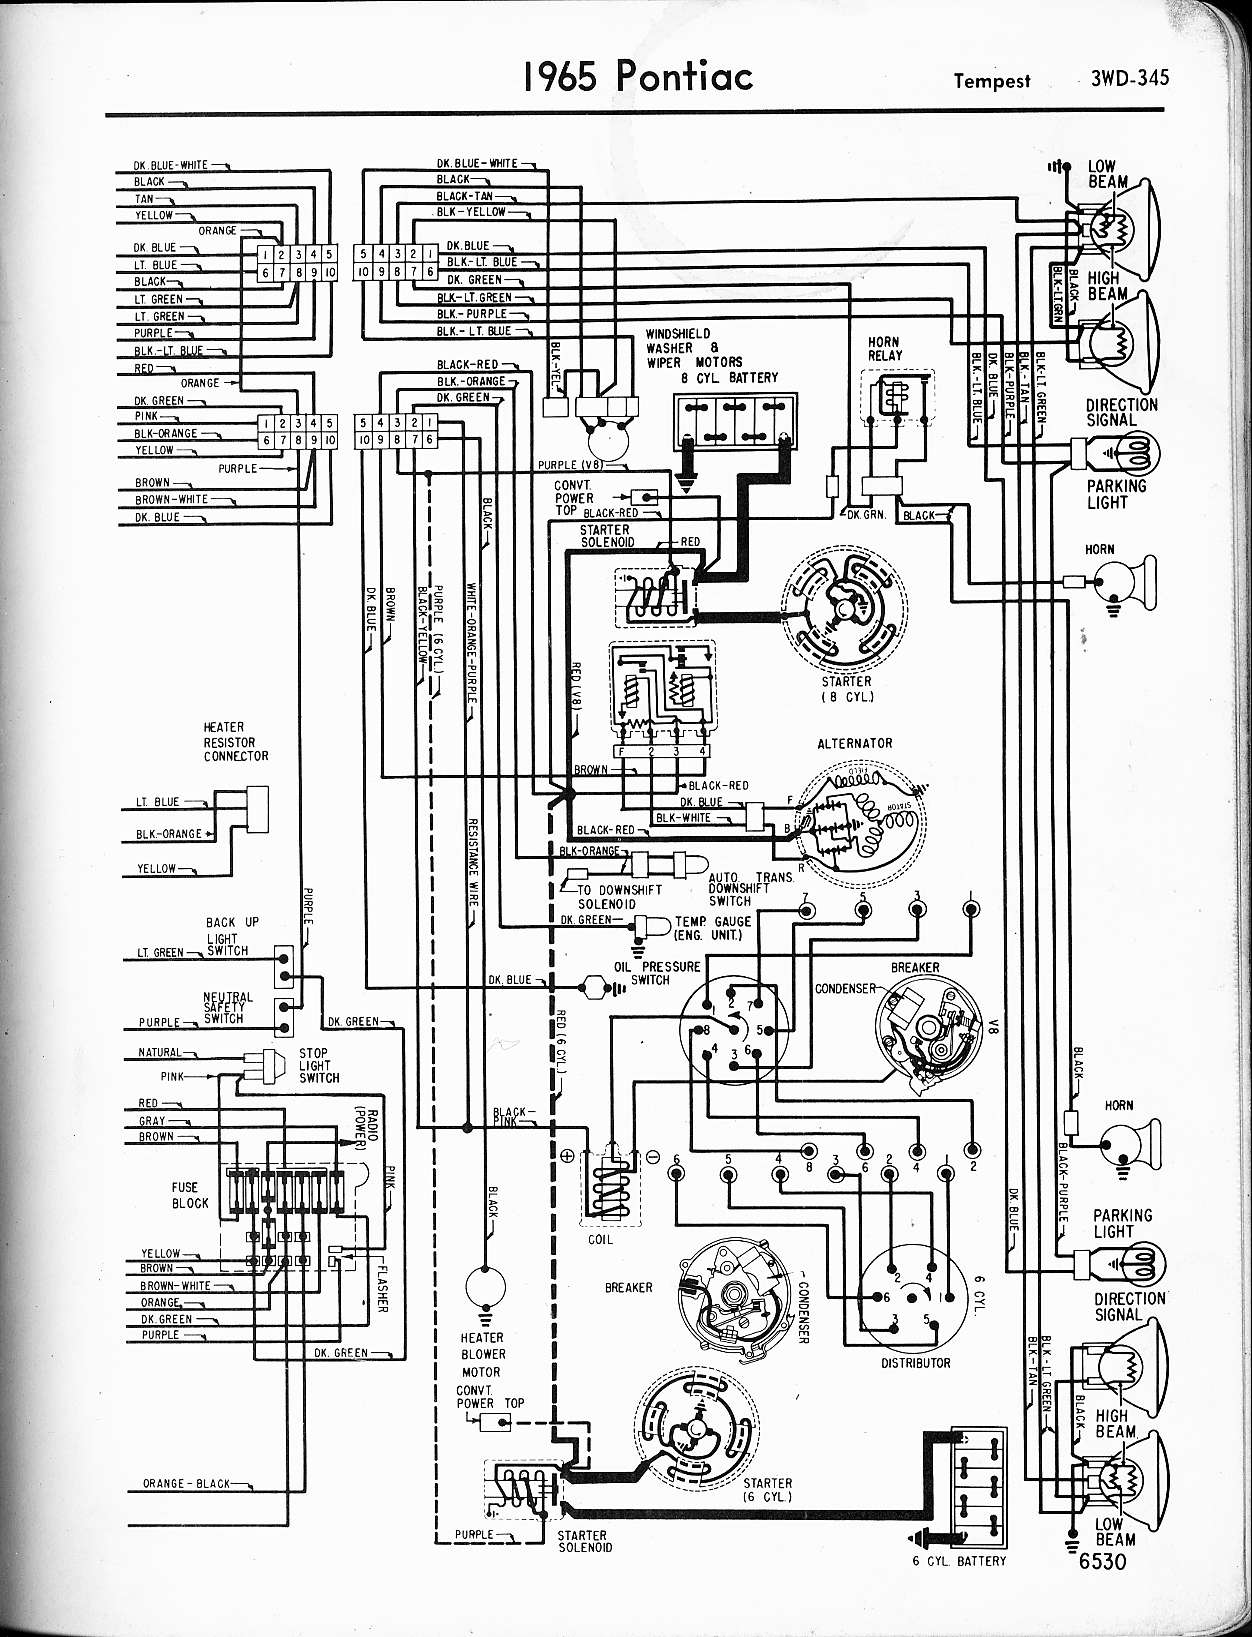 Wondrous 1969 Camaro Horn Wiring Diagram Wiring Diagram Tutorial Ranpur Mohammedshrine Wiring Digital Resources Ranpurmohammedshrineorg